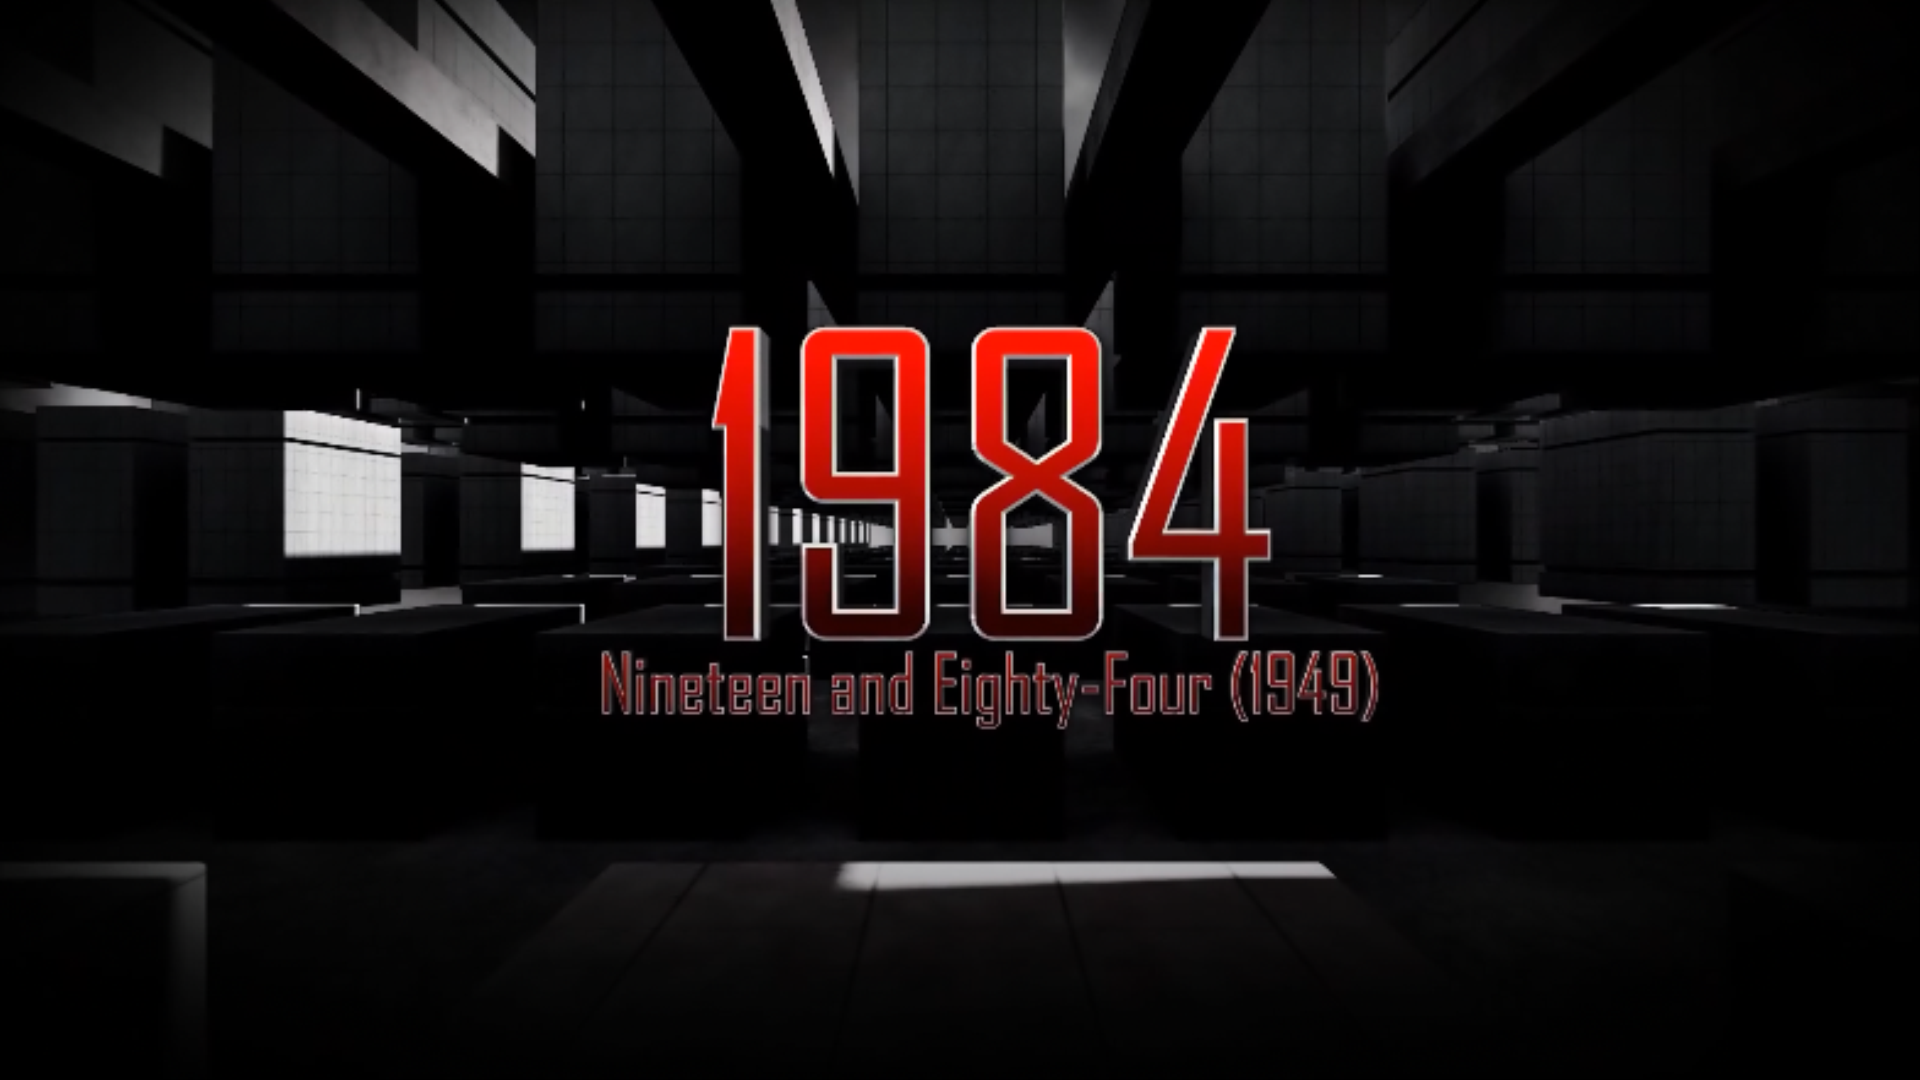 095. 1984(Nineteen and Eighty-Four)_F 0000046857ms